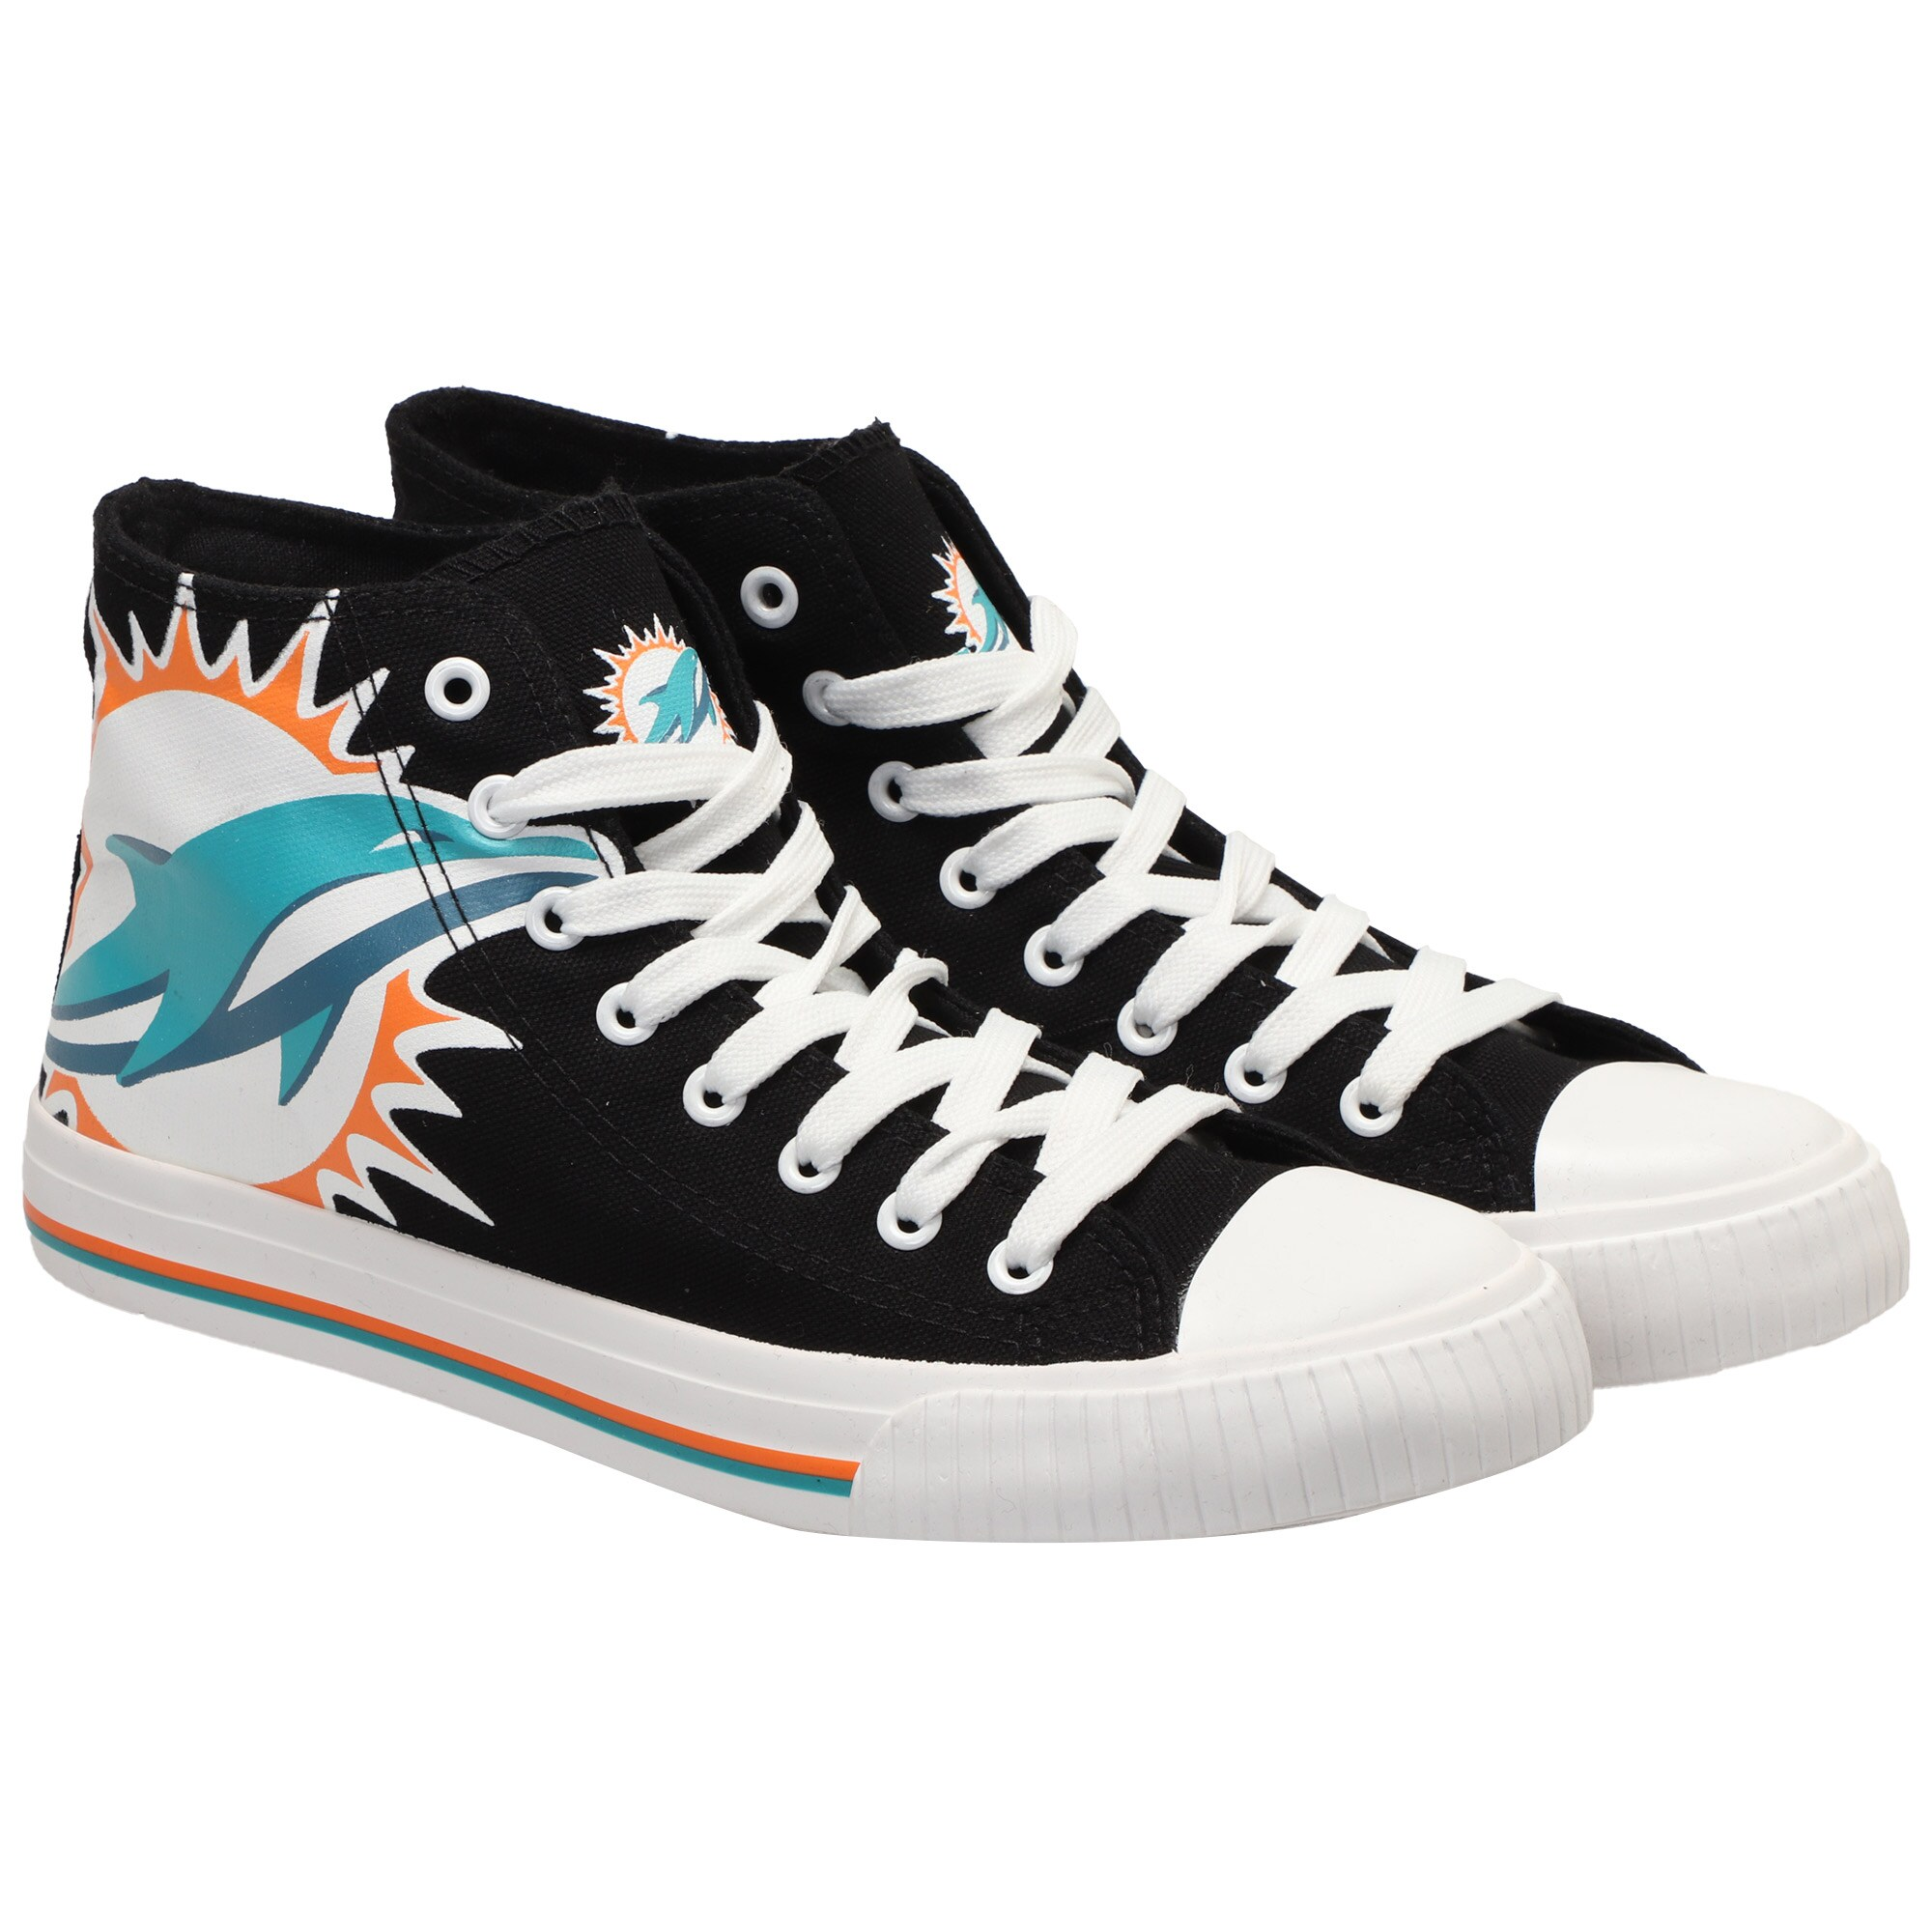 Miami Dolphins Big Logo High Top Sneakers